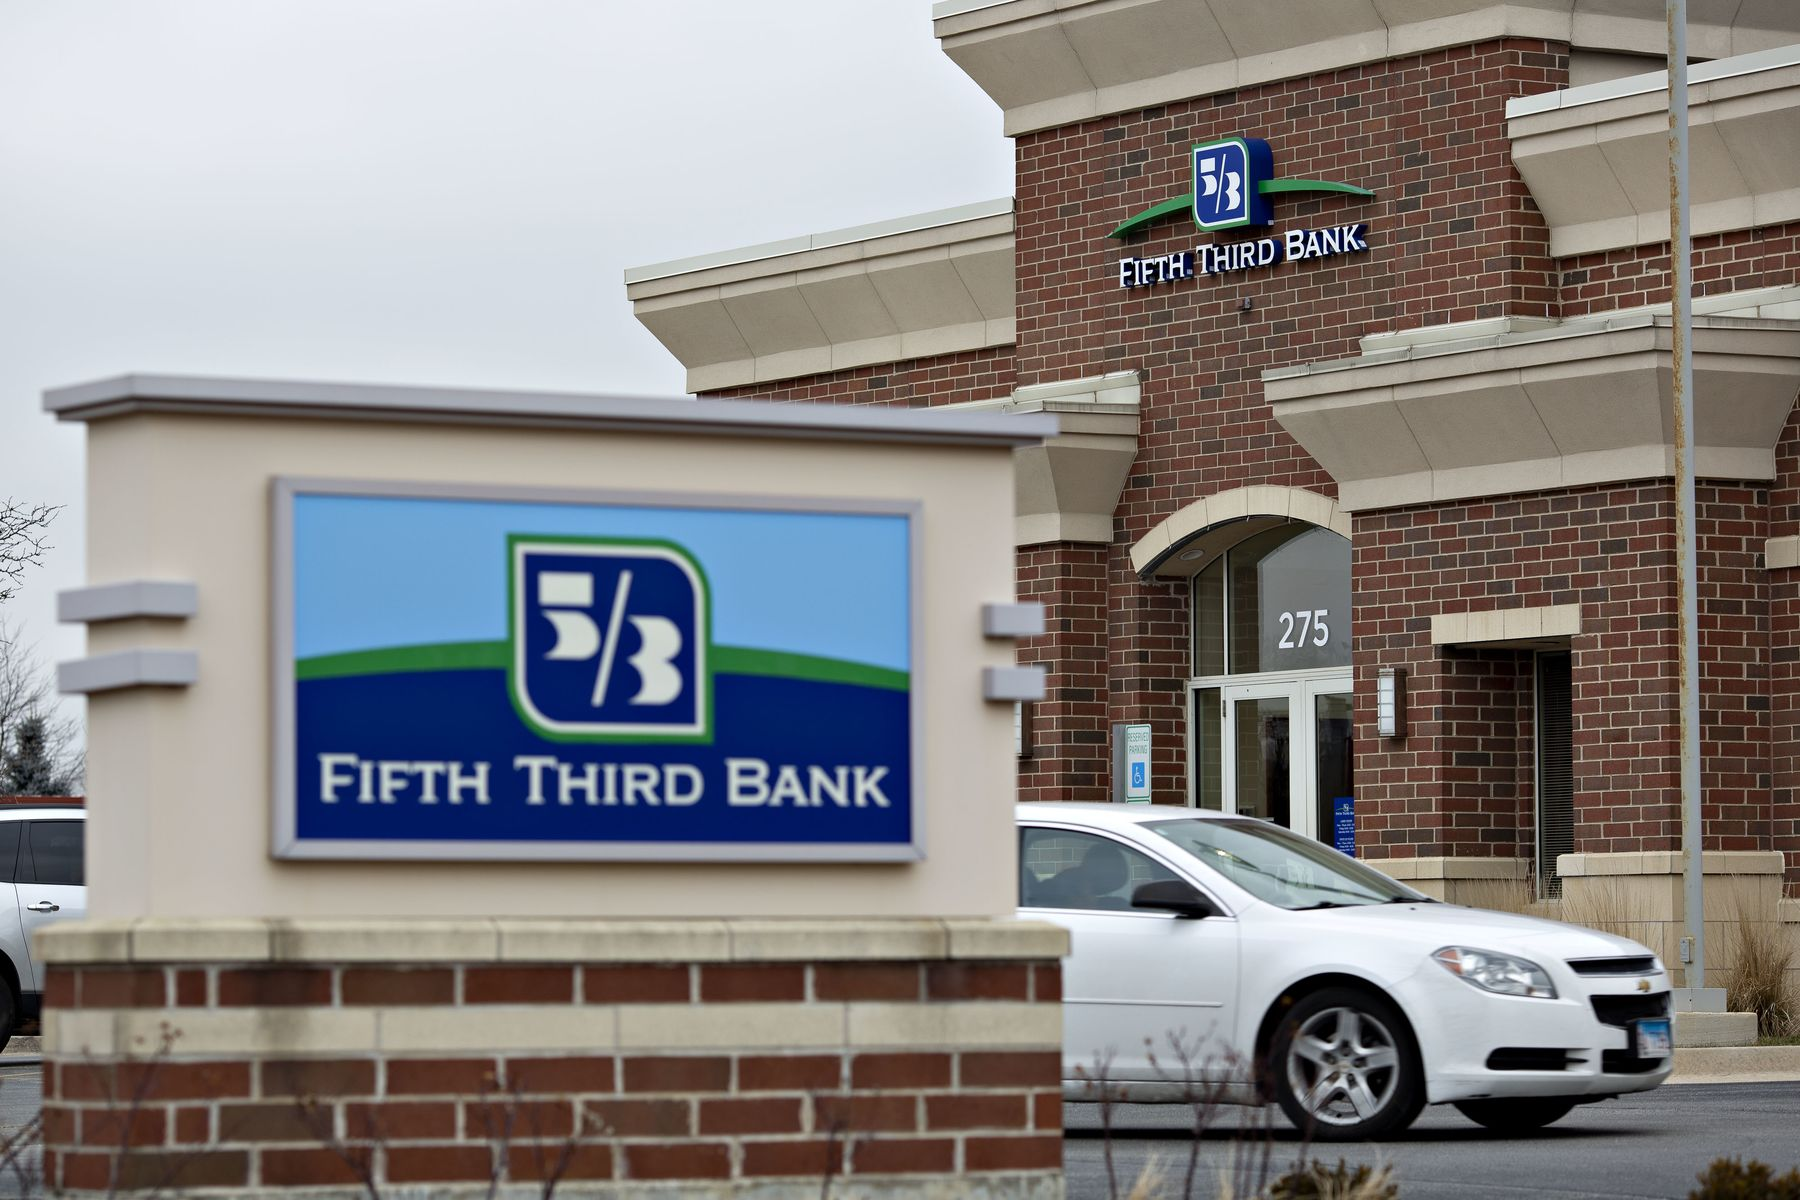 A Fifth Third Bancorp branch in Romeoville, Illinois.